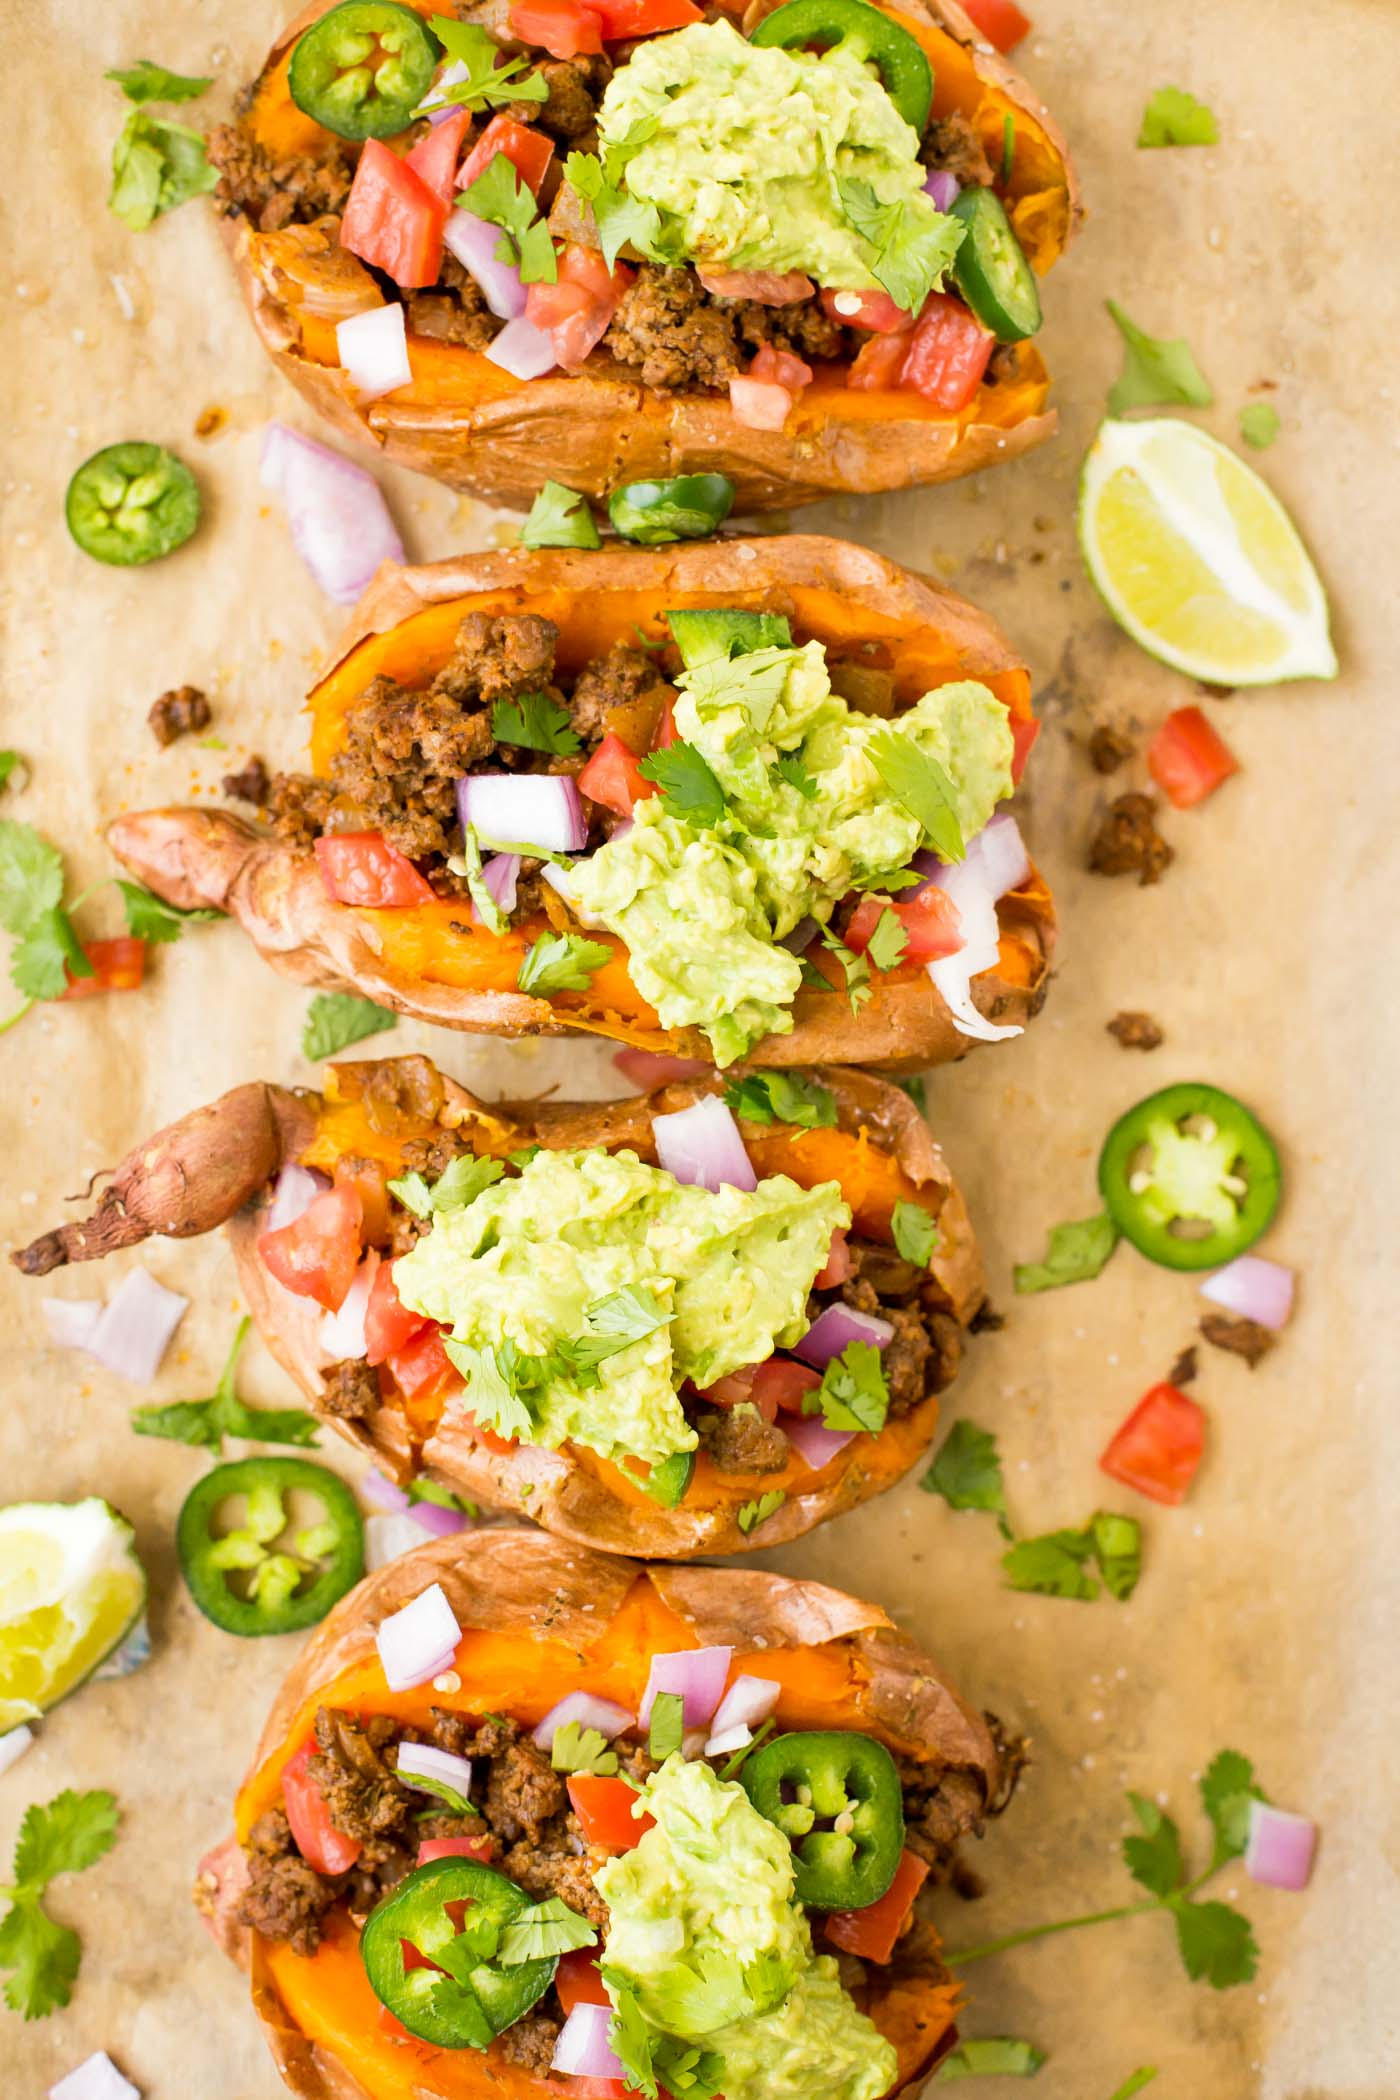 four sweet potatoes stuffed with ground beef, diced jalapenos, onions, and tomatoes, and garnished with cilantro and smashed avocado